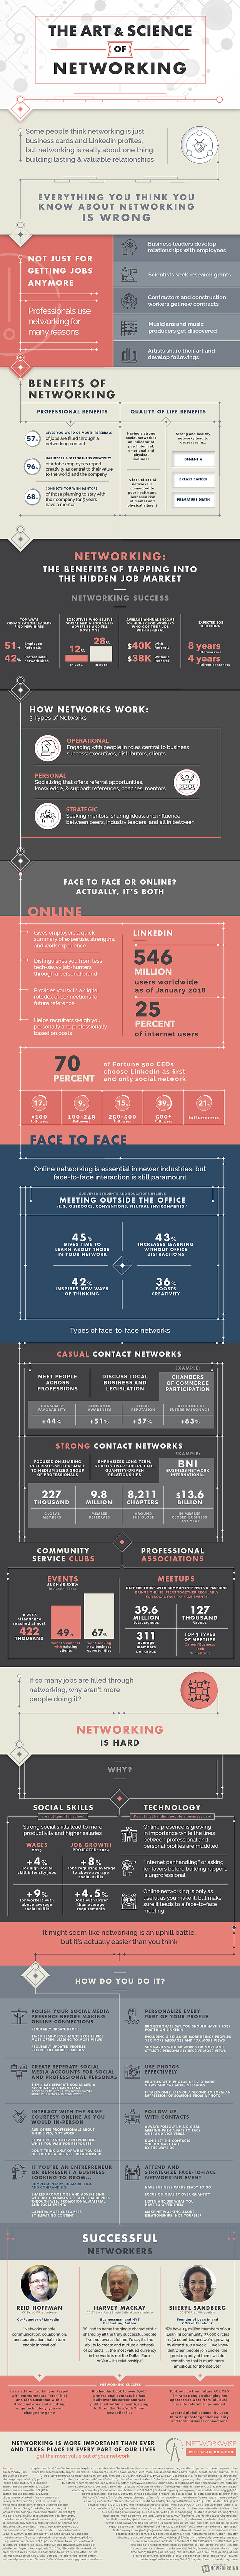 The Art and Science of Networking [Infographic]